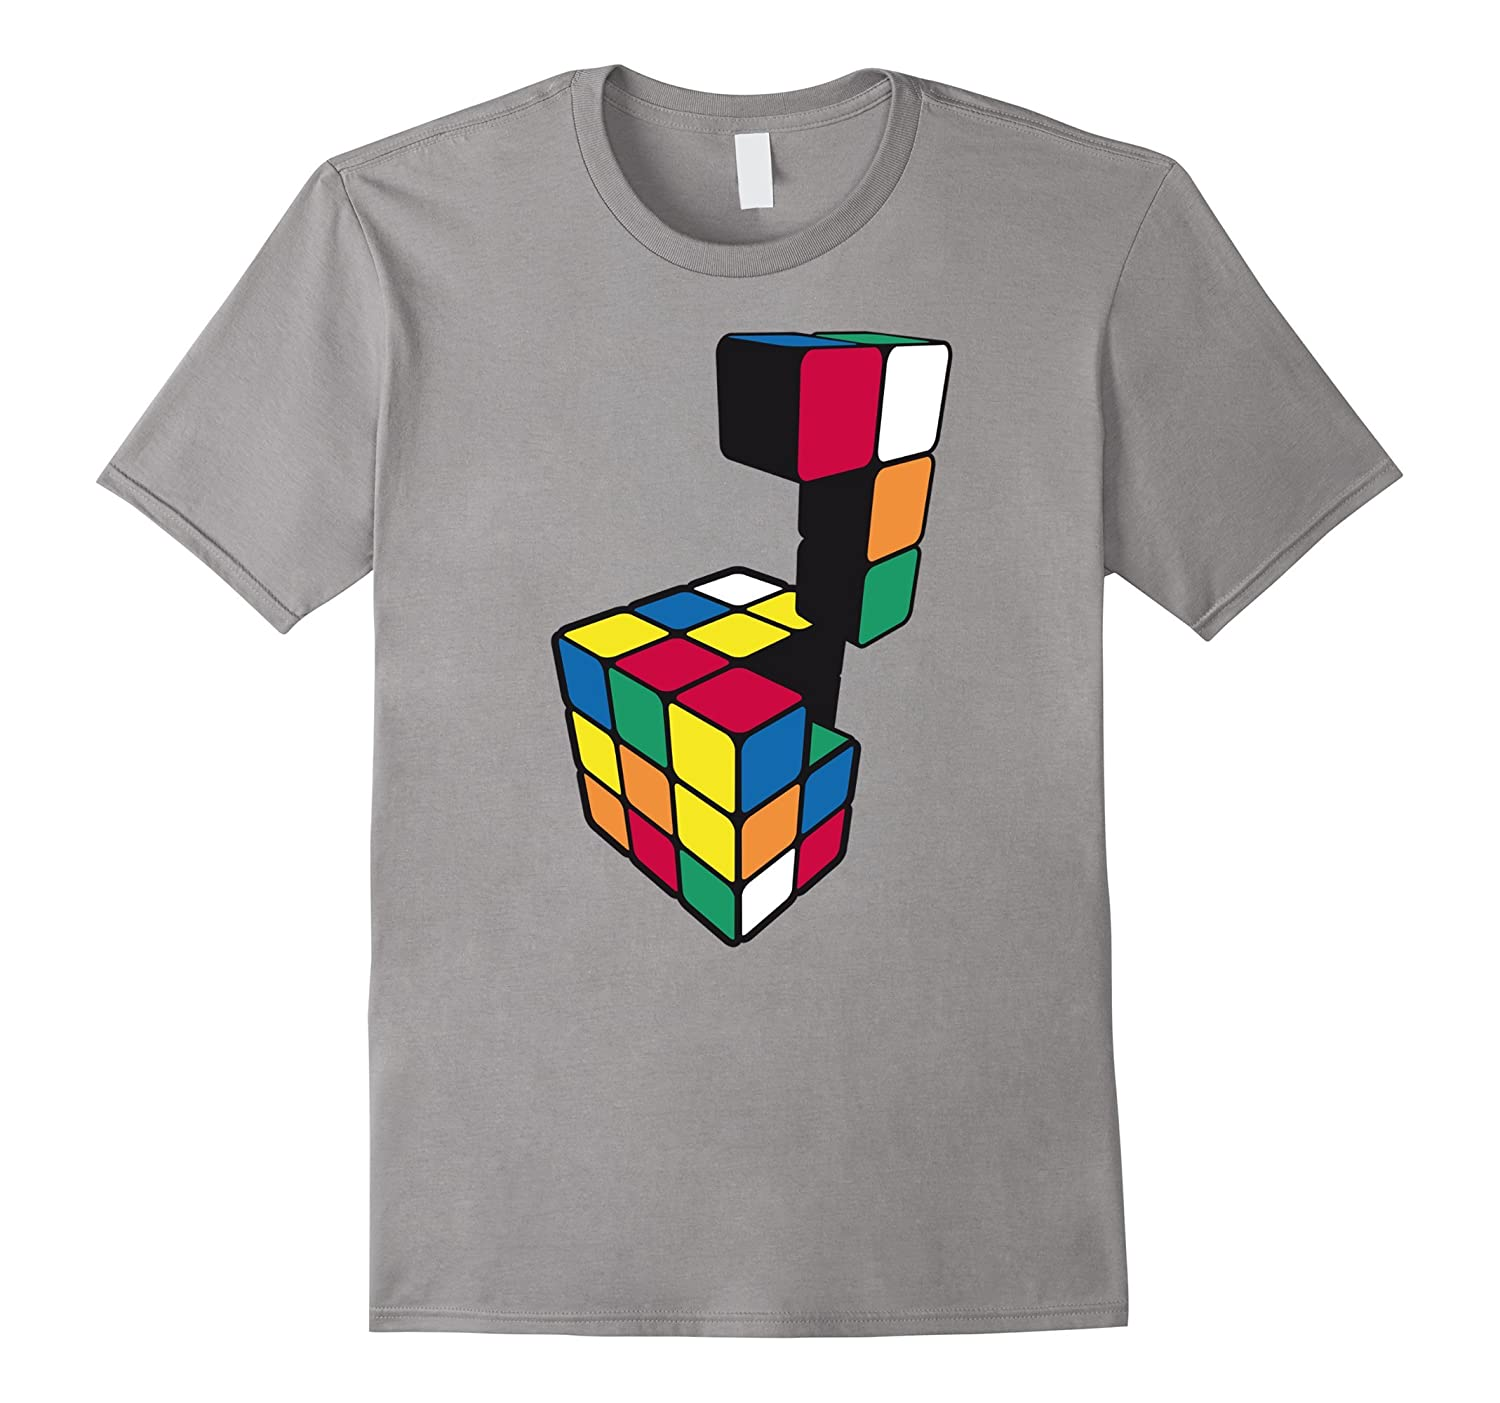 80s Rad Puzzle Cube - Nerdy Eighties Gaming Shirt Funny-TH